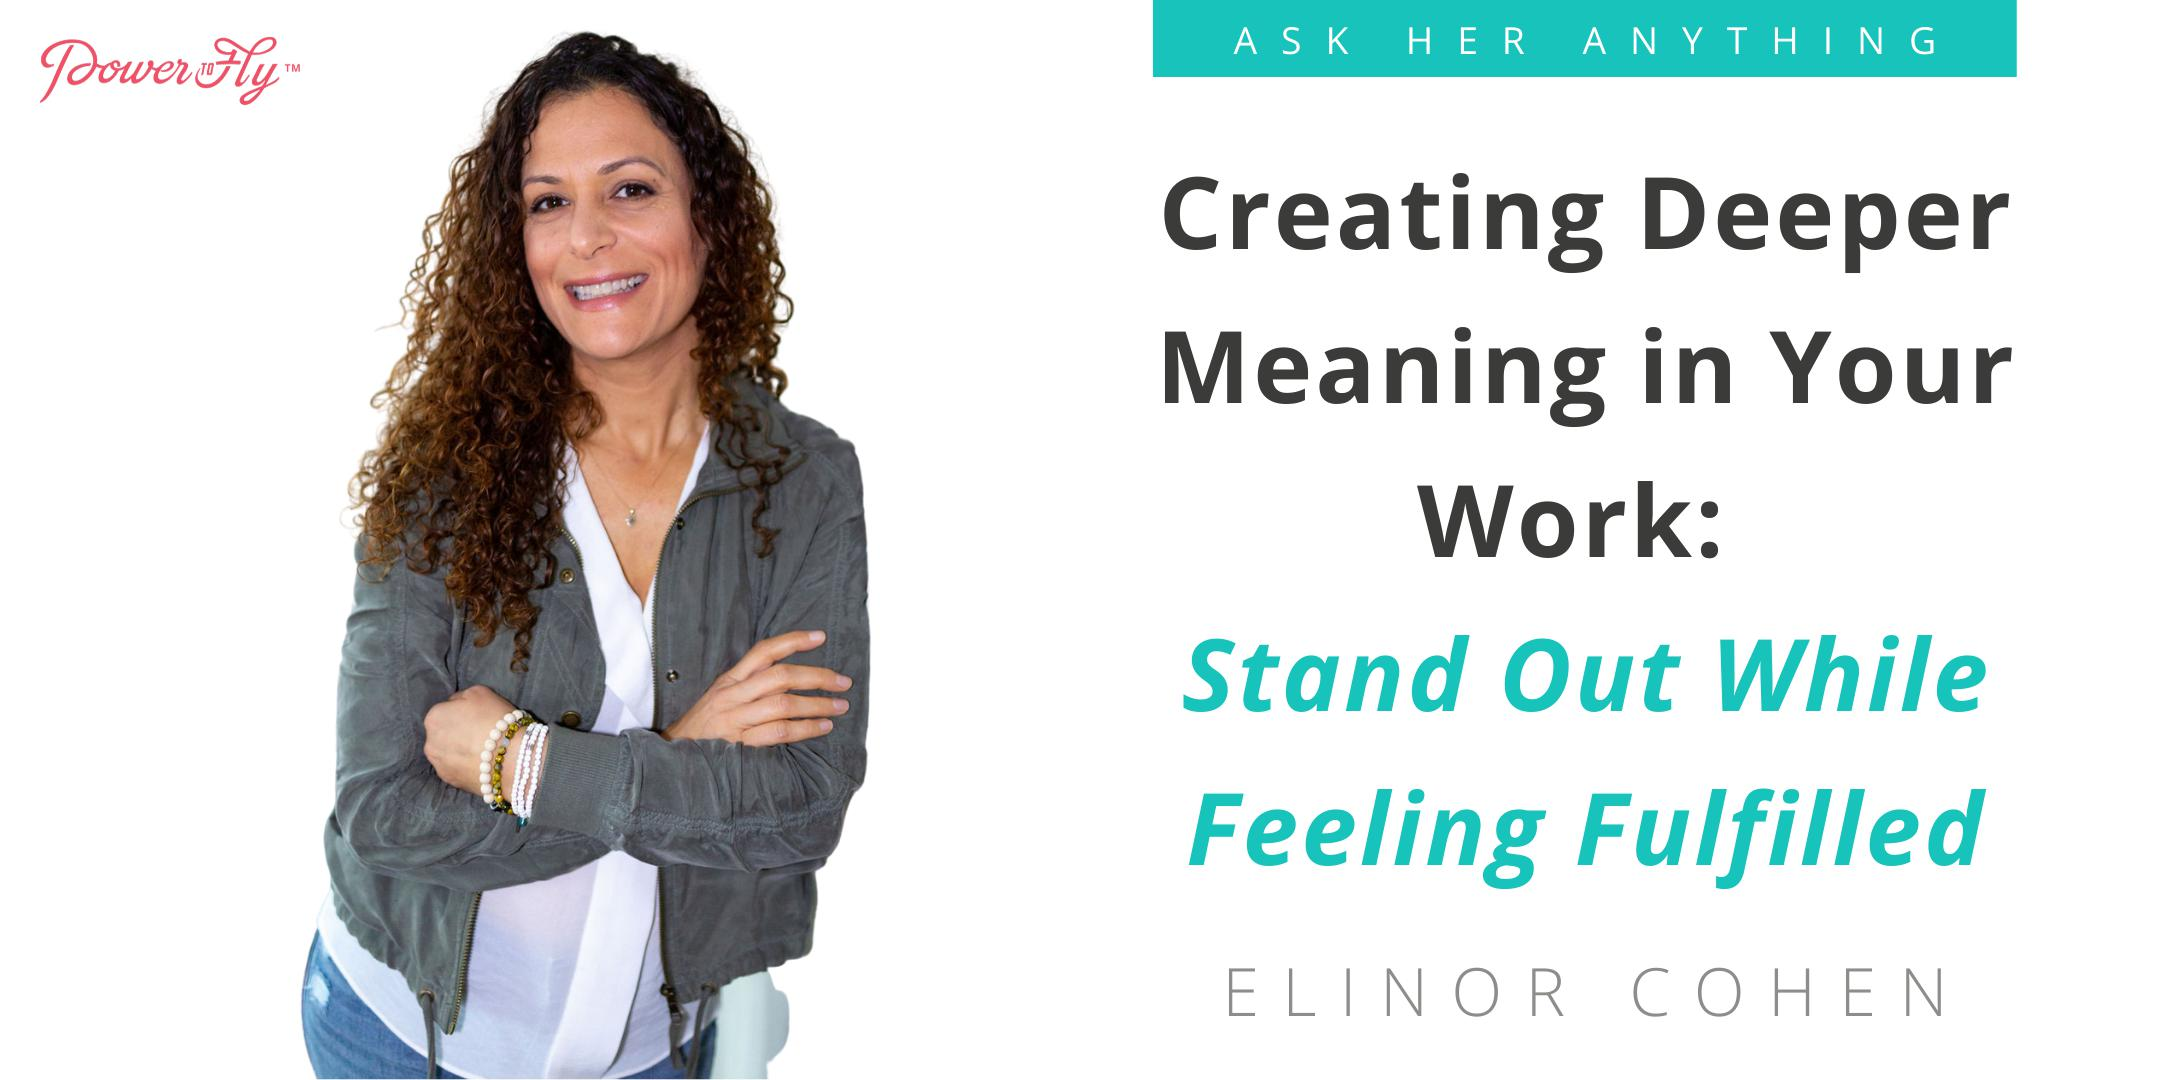 Creating Deeper Meaning in Your Work: Stand Out While Feeling Fulfilled